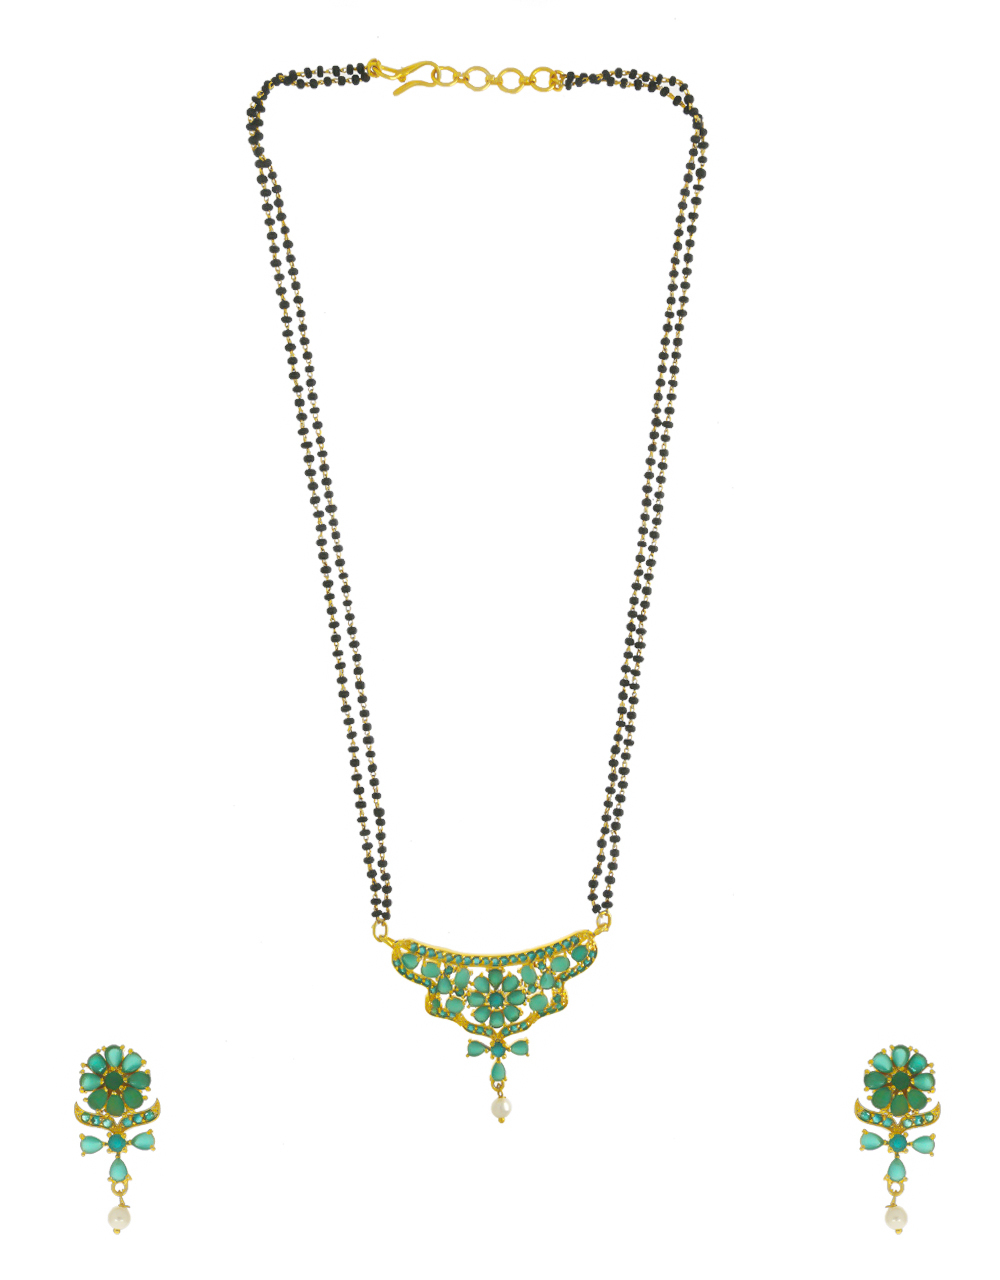 Green Colour Gold Finish Floral Design Styled With Pearls Beads Short Mangalsutra